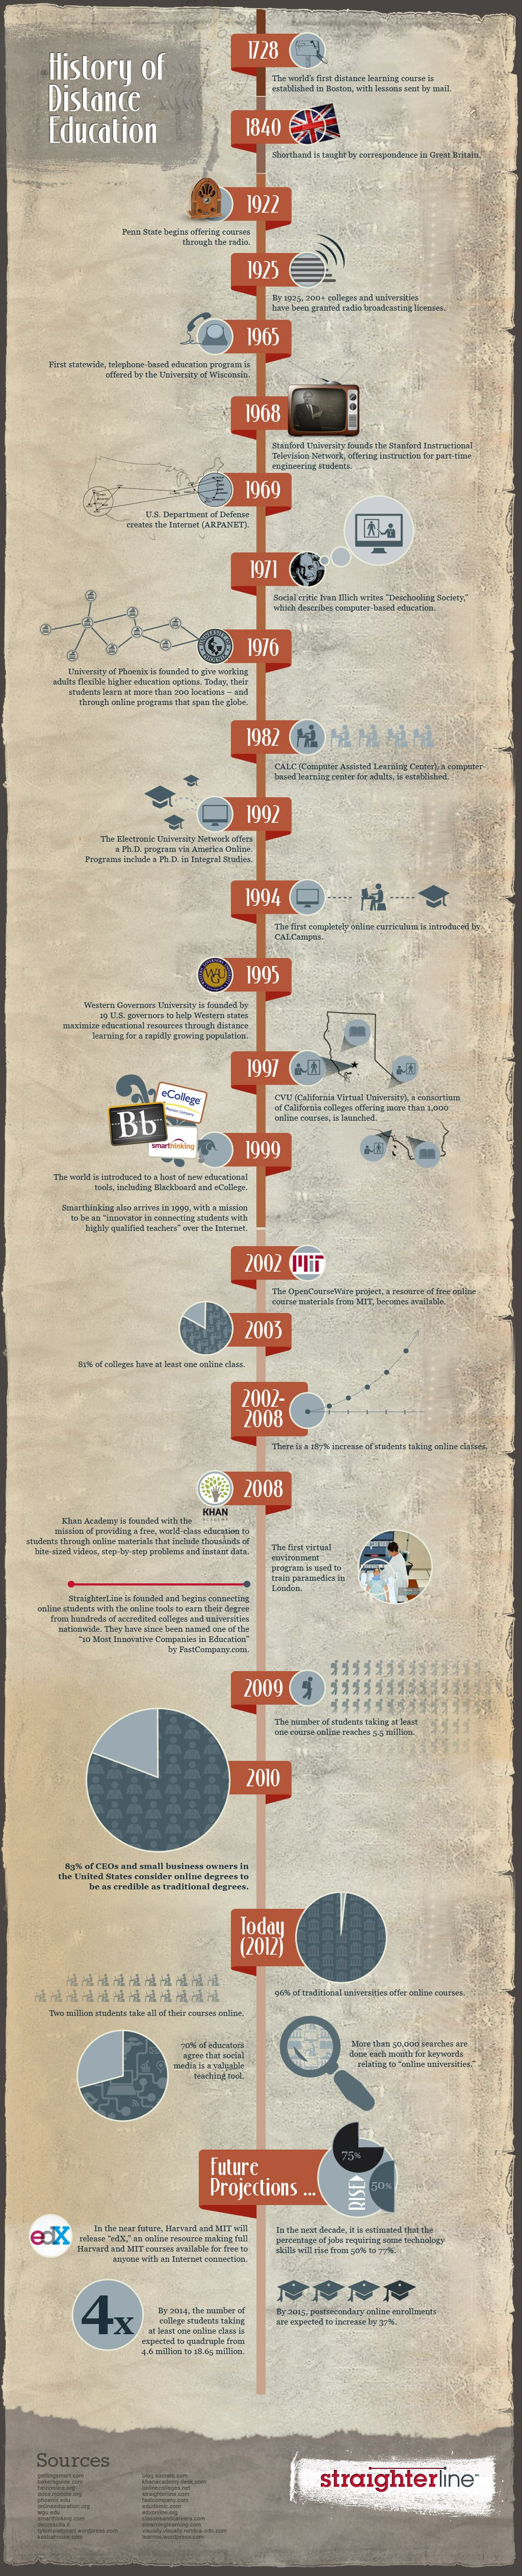 education throughout history